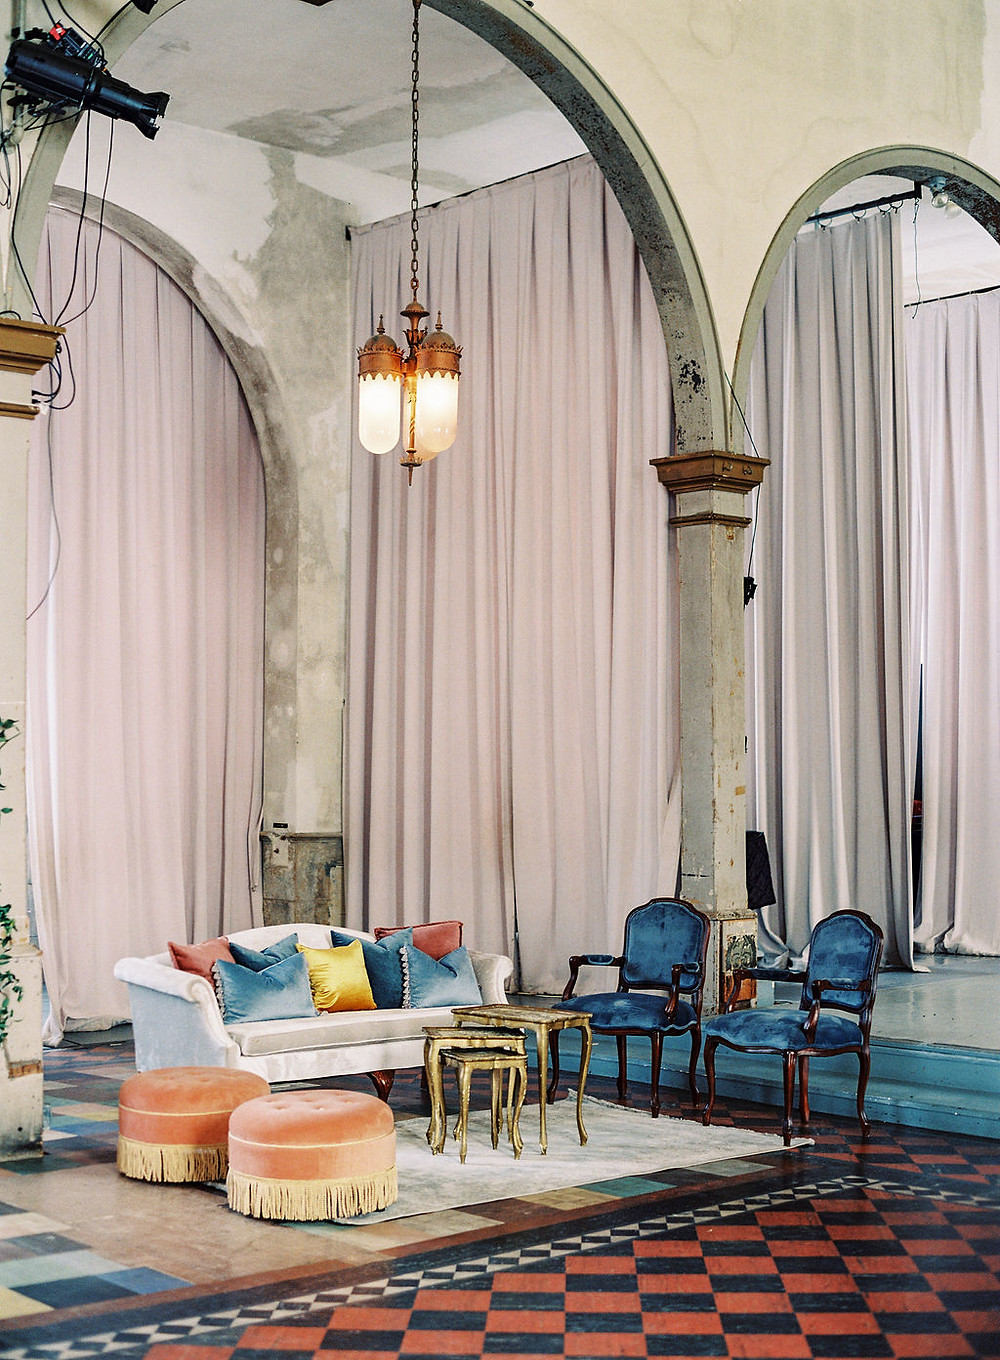 Lounge Space and Seating for Bridgerton Inspired Wedding at the Marigny Opera House in New Orleans with Decor and Vintage Furniture by Lovegood Rentals